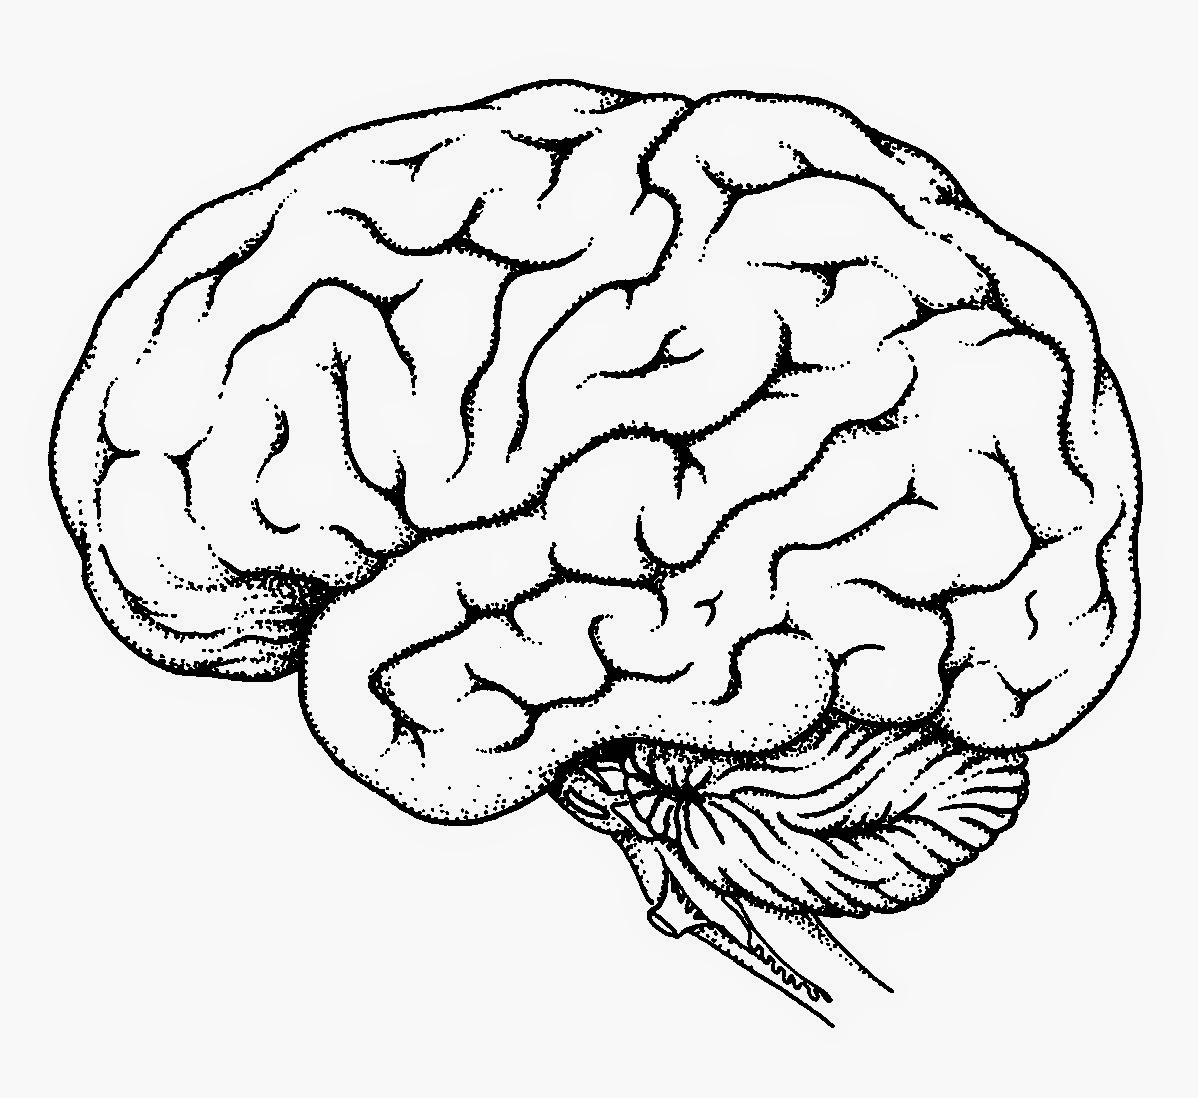 Human Brain Drawing At Getdrawings